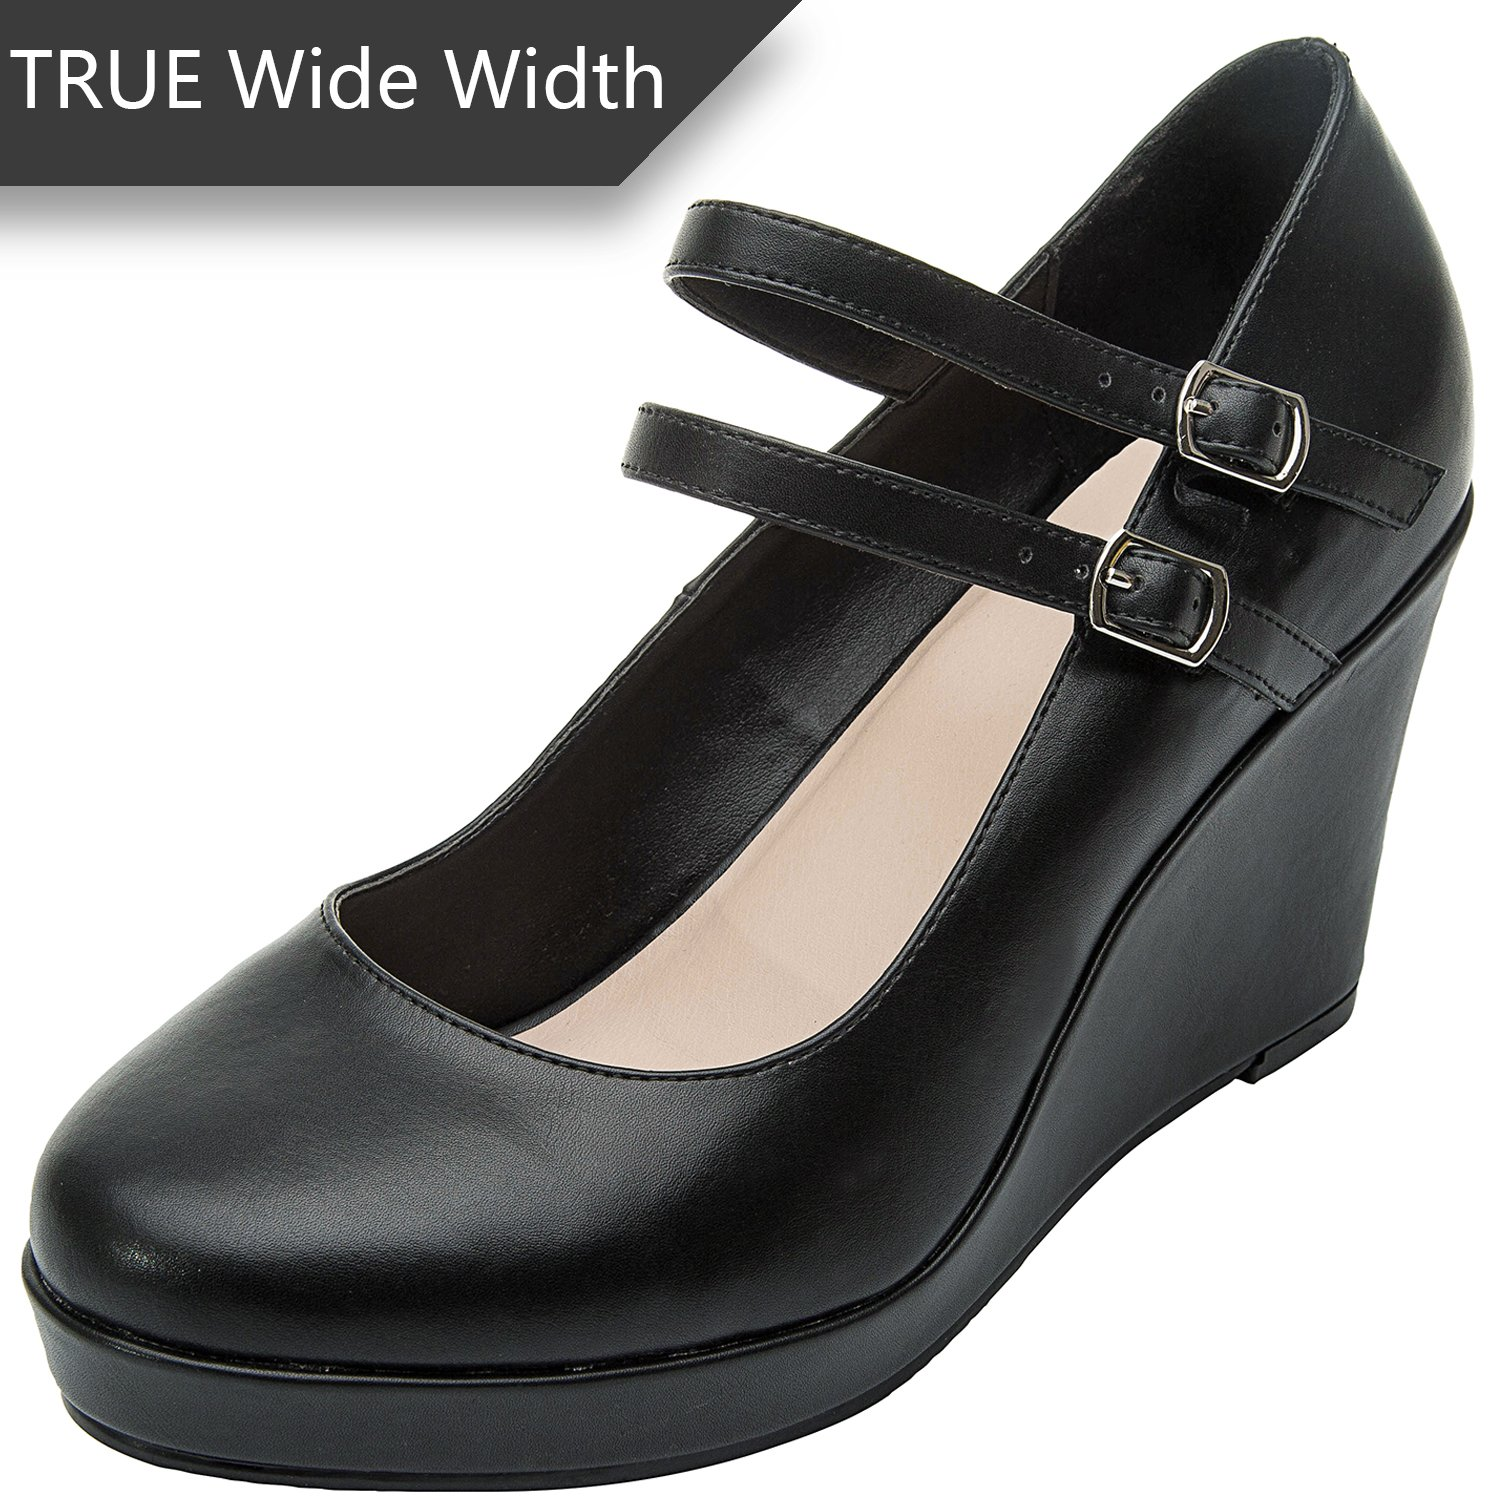 Luoika Women's Wide Width Wedge Shoes - Ankle Buckle Strap Round Closed Toe Mary Jane Shoes Heel Pump(Black 180318,10.5WW)